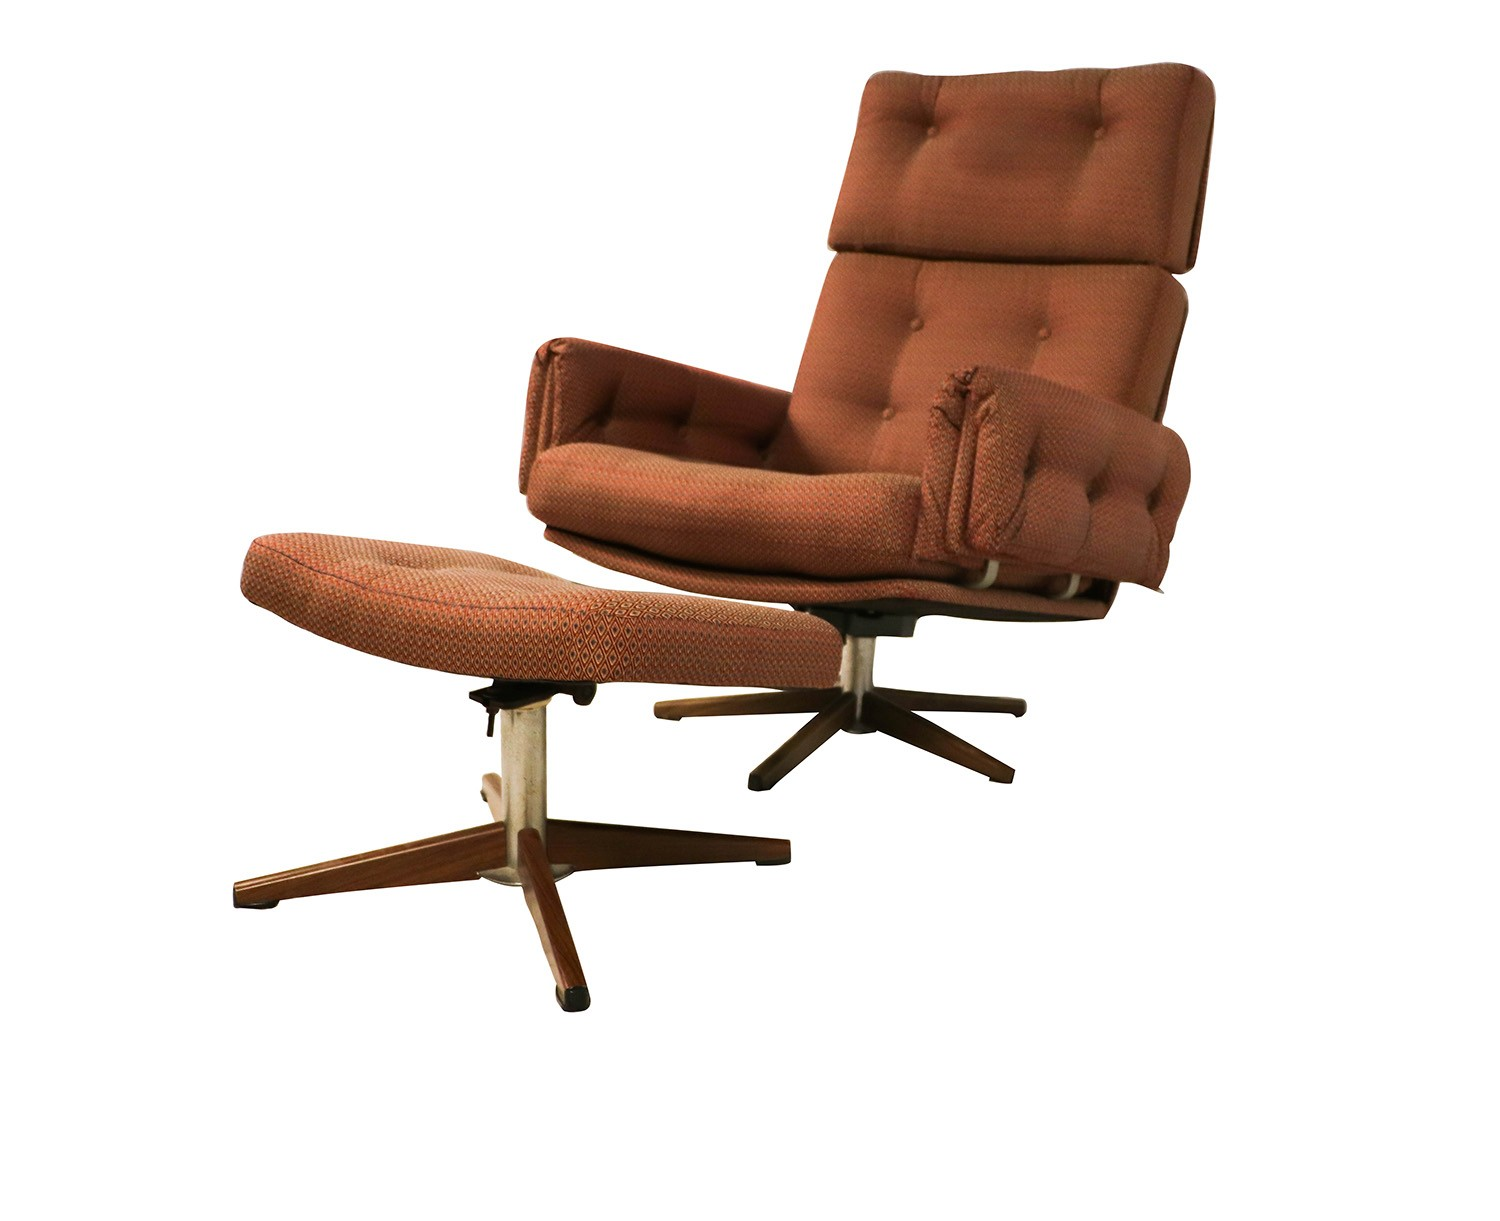 Mid Century Lounge Chair and Ottoman : Mid Century Lounge Chair and Ottoman 5 from marykaysfurniture.com size 1500 x 1221 jpeg 172kB